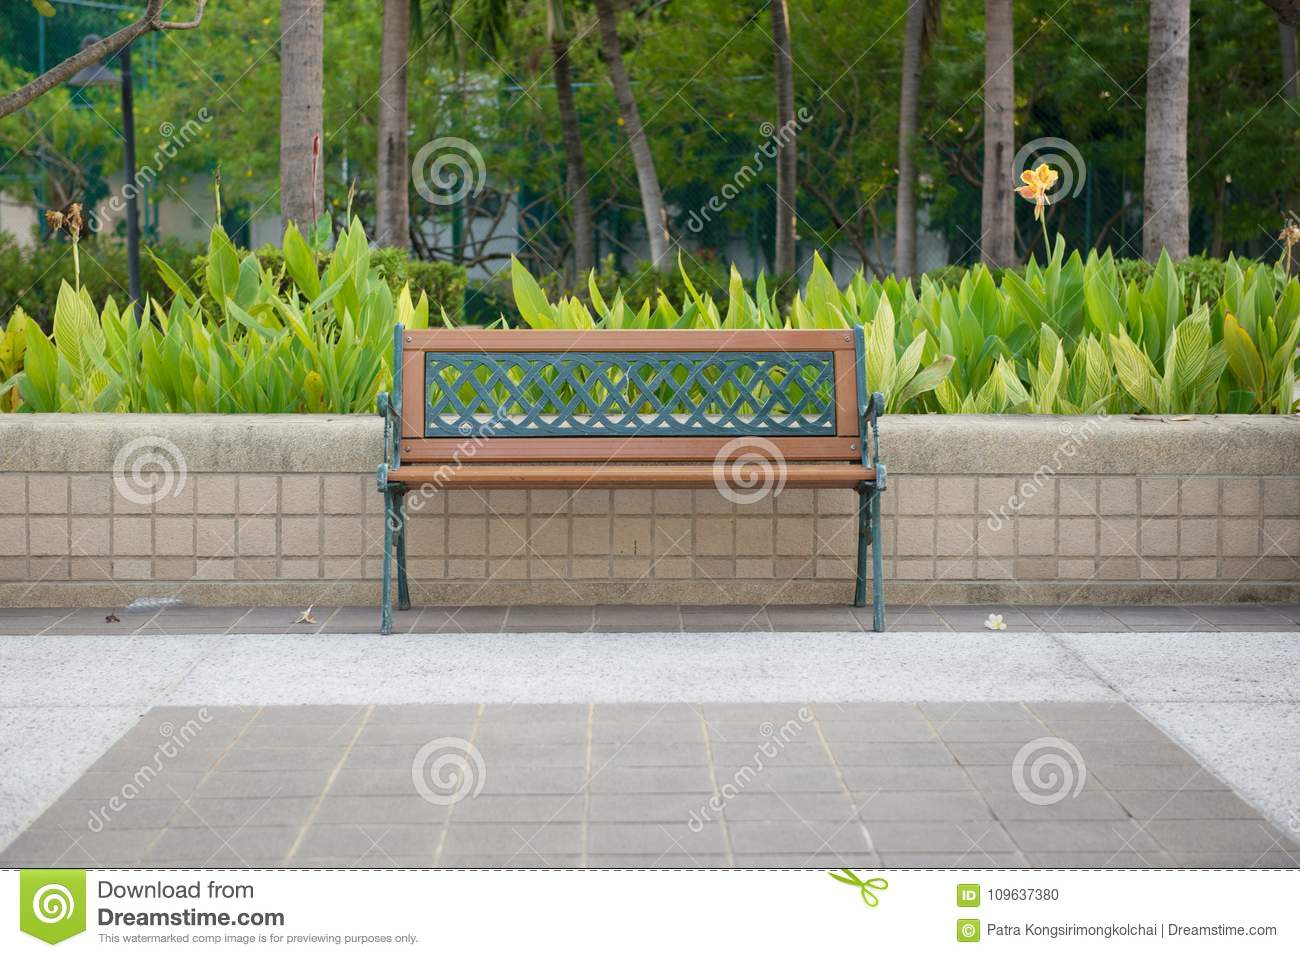 Empty Bench isolated in a public park with garden